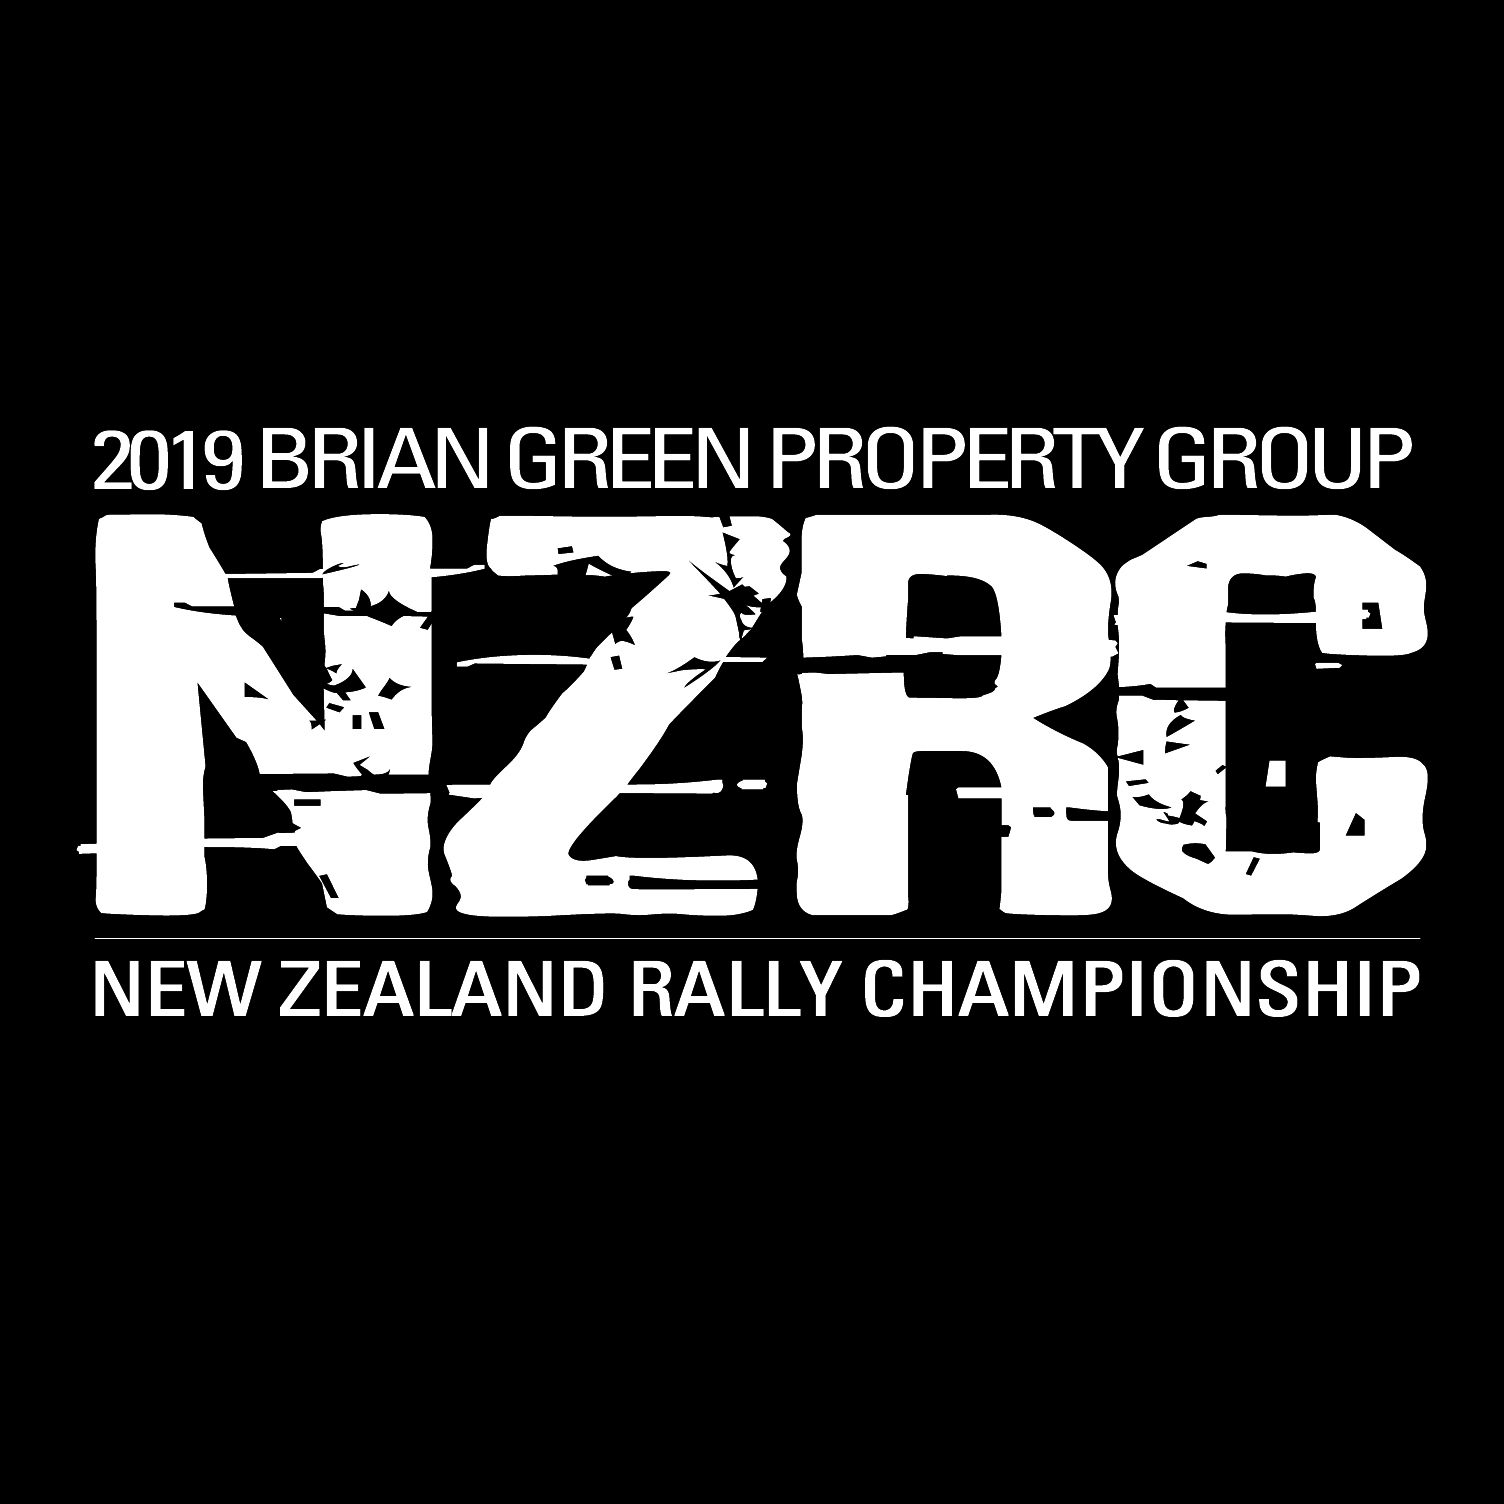 Paddon's Rally, Hawkeswood's title | :: Brian Green Property Group New Zealand Rally Championship ::